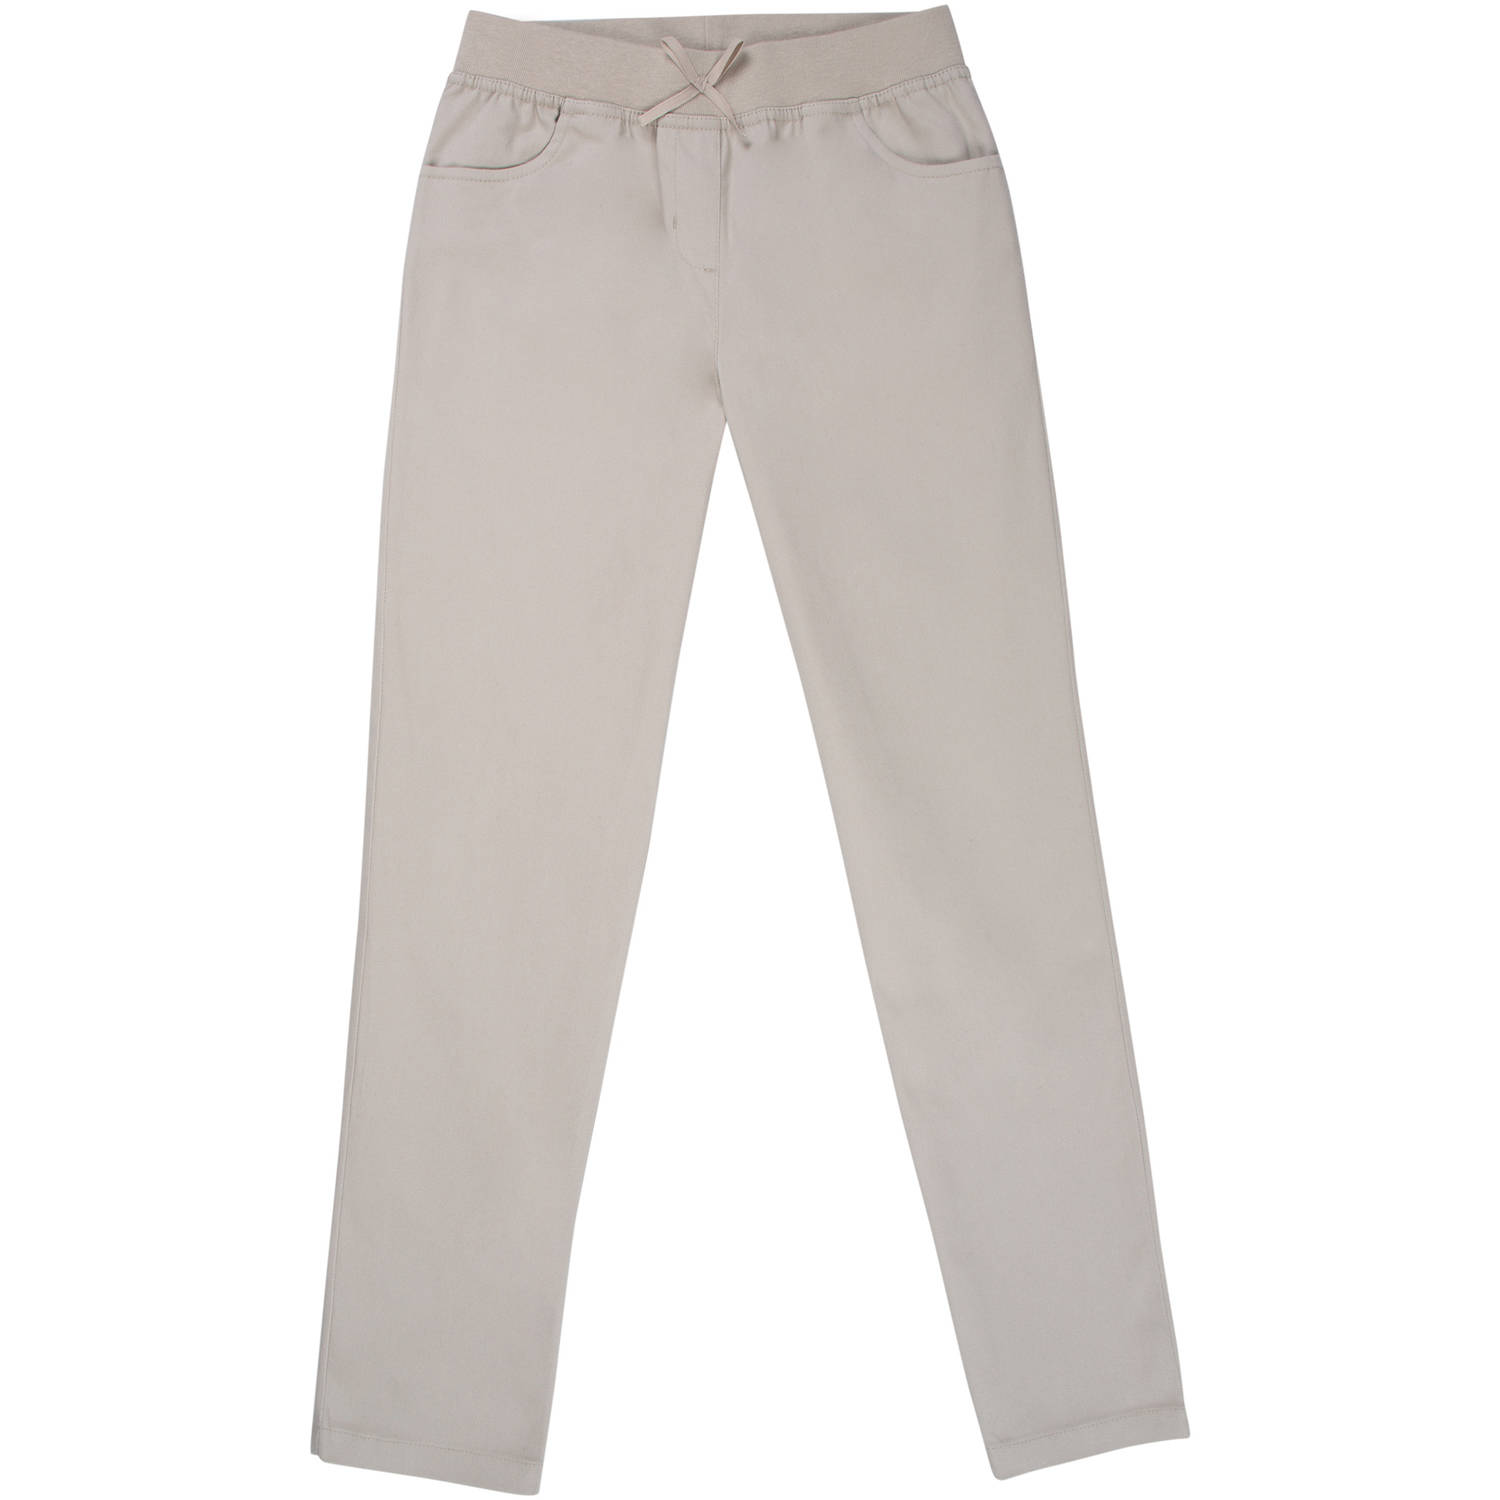 George Girls School Uniform Pull On Pants Walmartcom